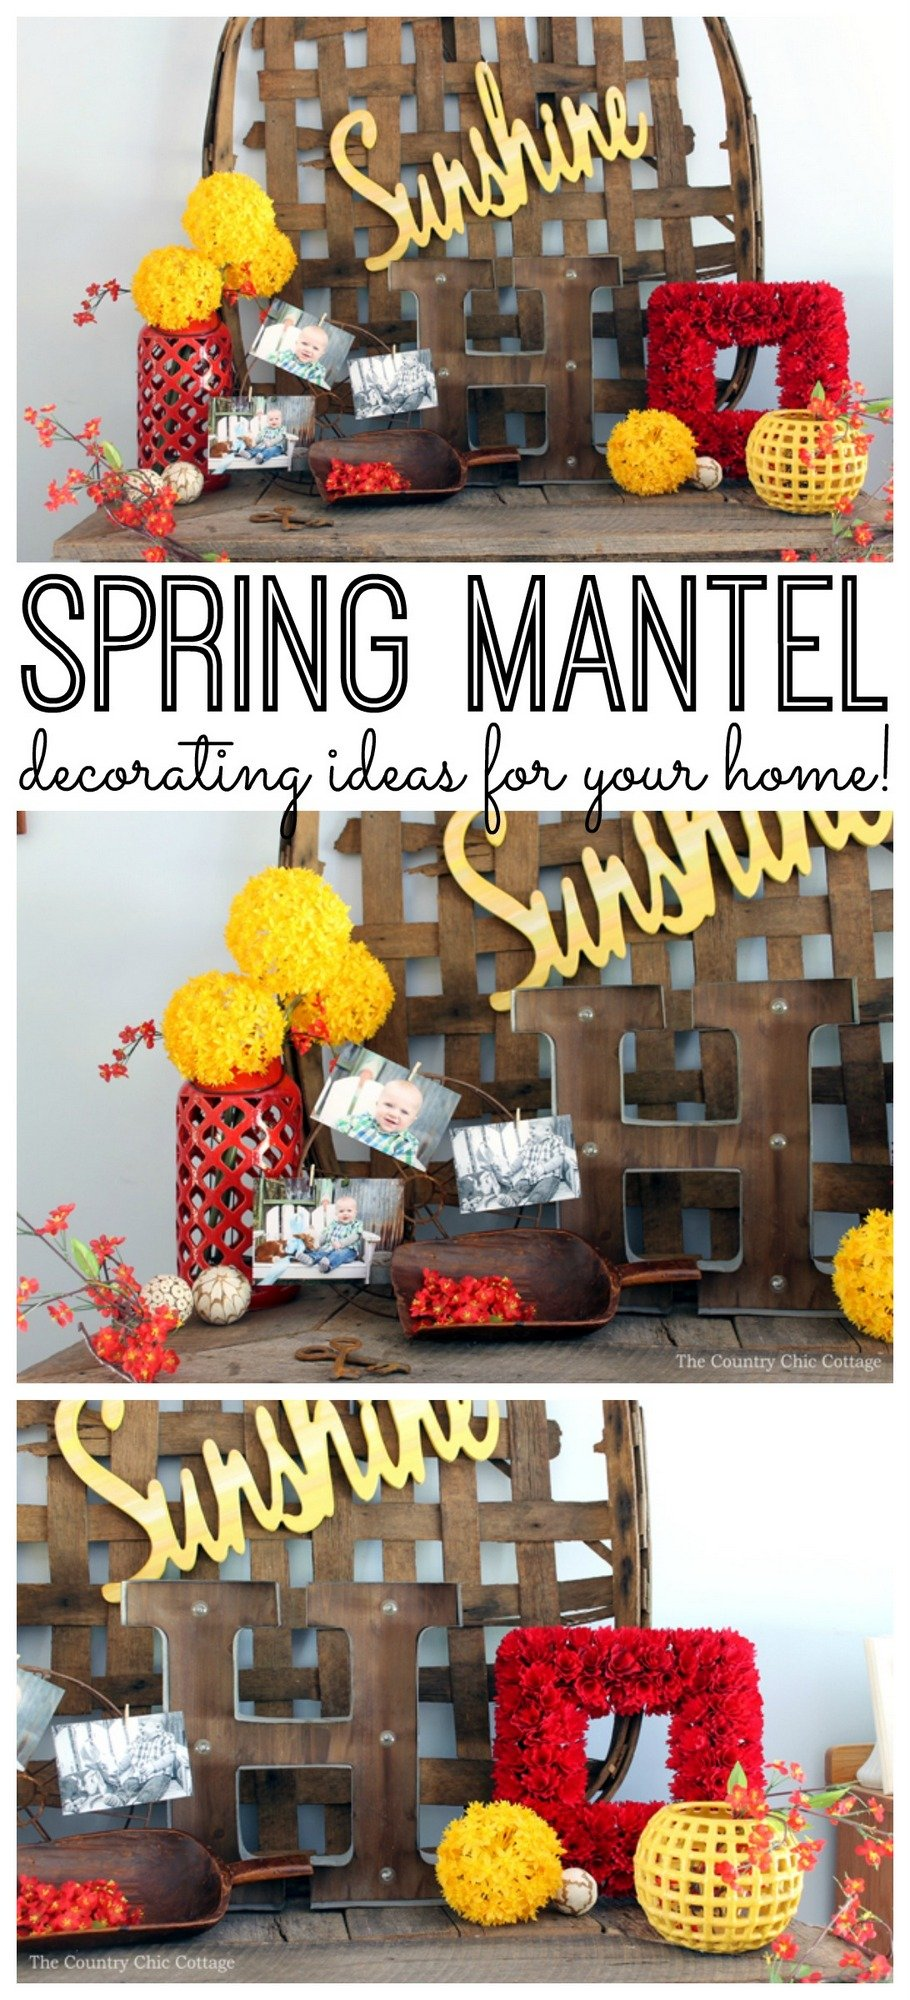 Get spring mantel decorating ideas here! A fun spring mantel that will look great in your home decor!